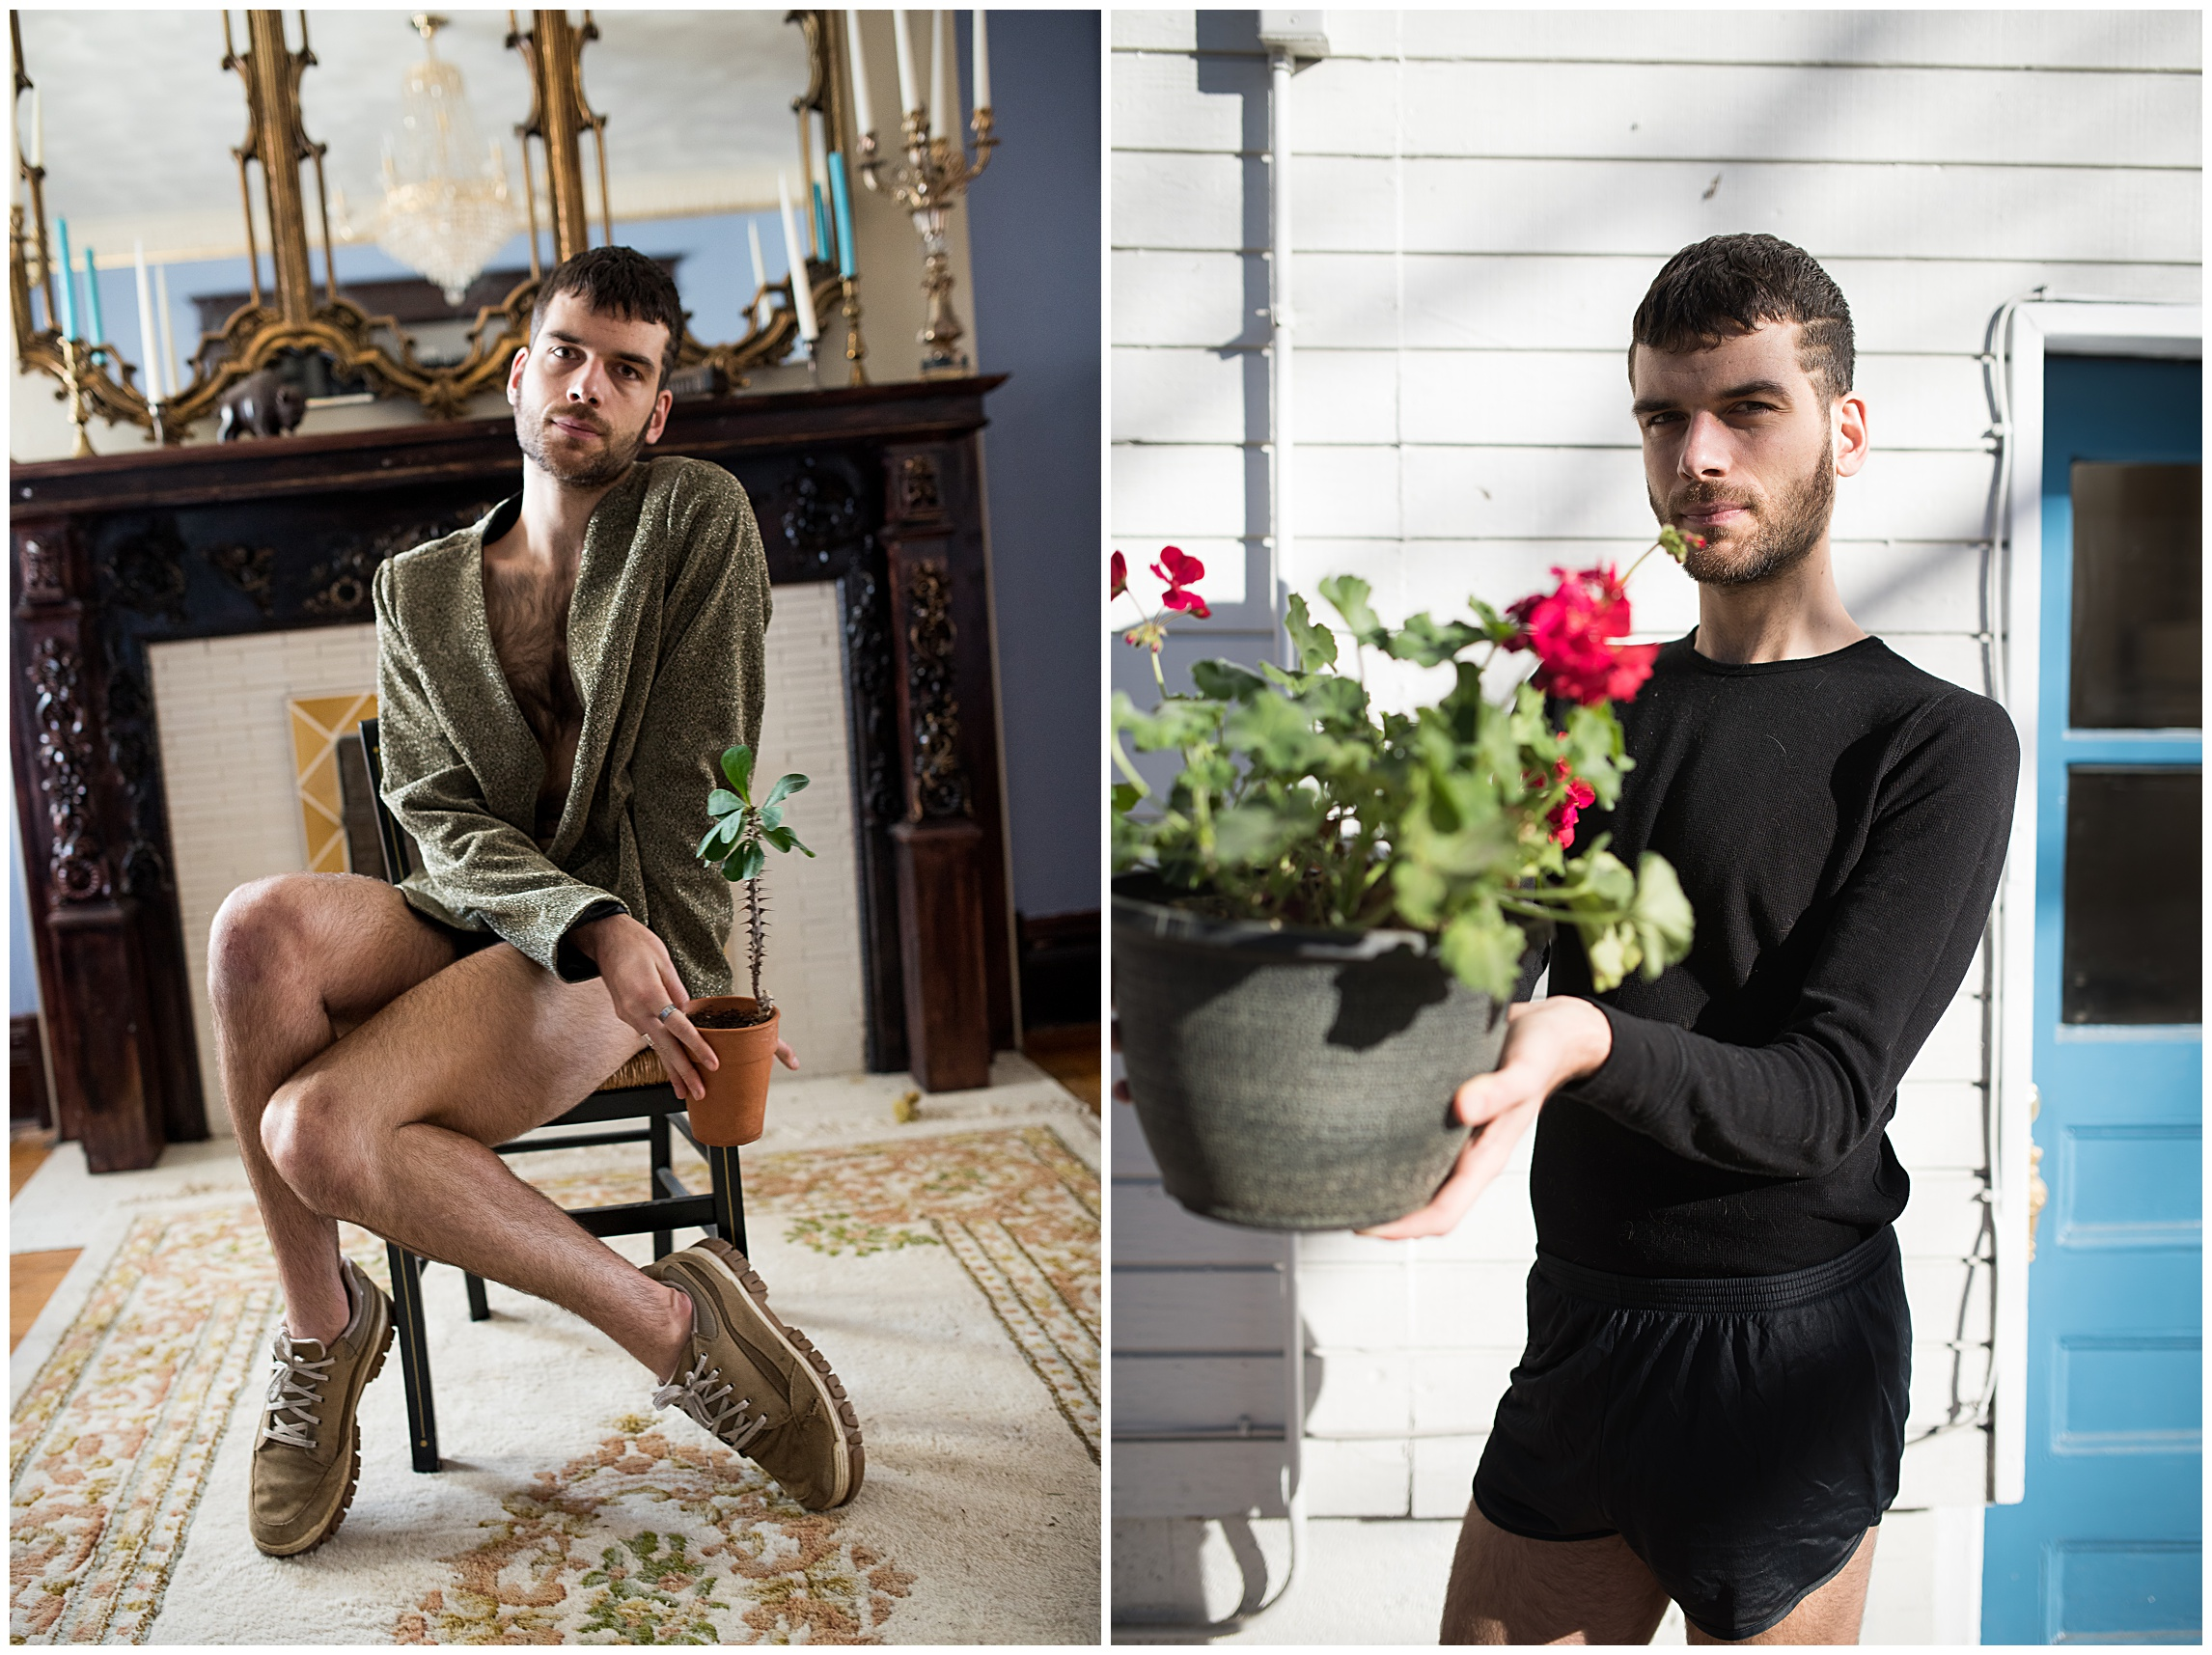 Beautiful dancer portraits by Sonja K Photography holding plants in an LGBTQ house in Denver, Colorado.